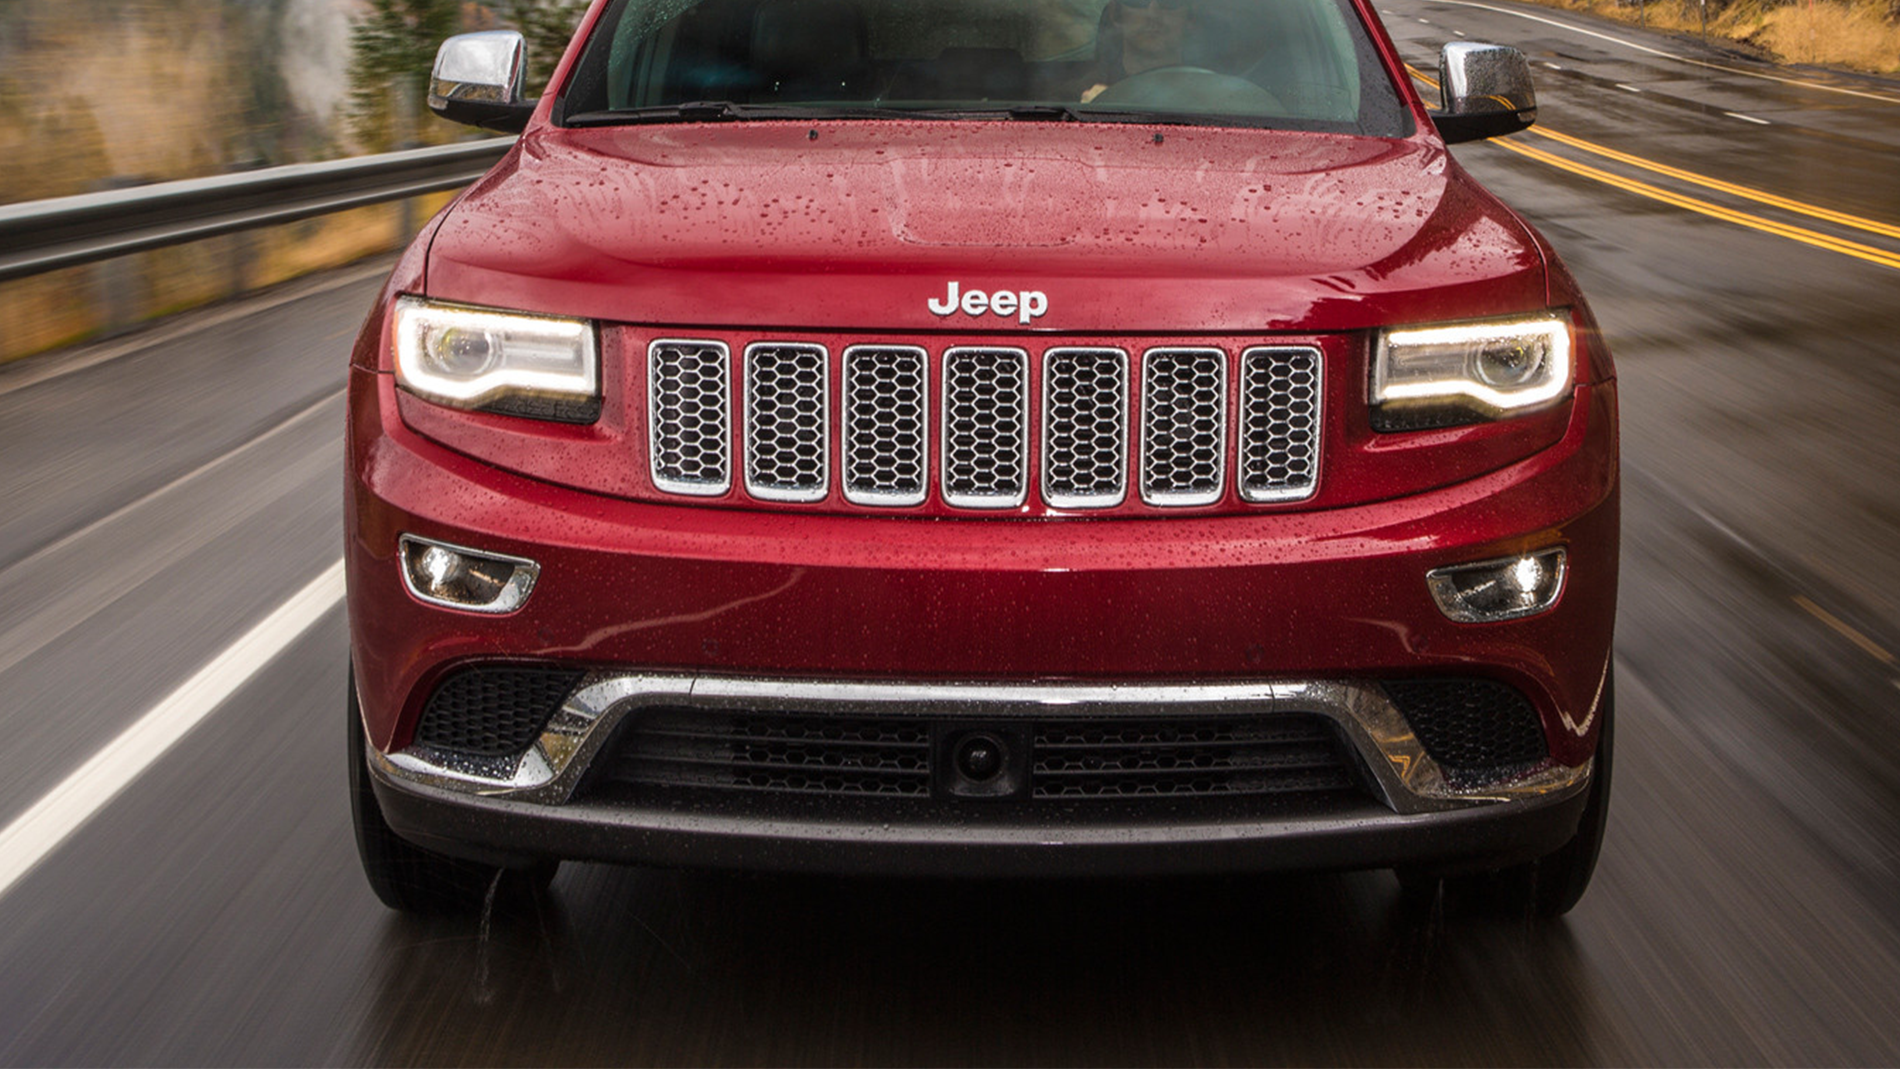 sport jeep new leases vehicles select sale ottawa compact wrangler trim in for img dodge utility manual